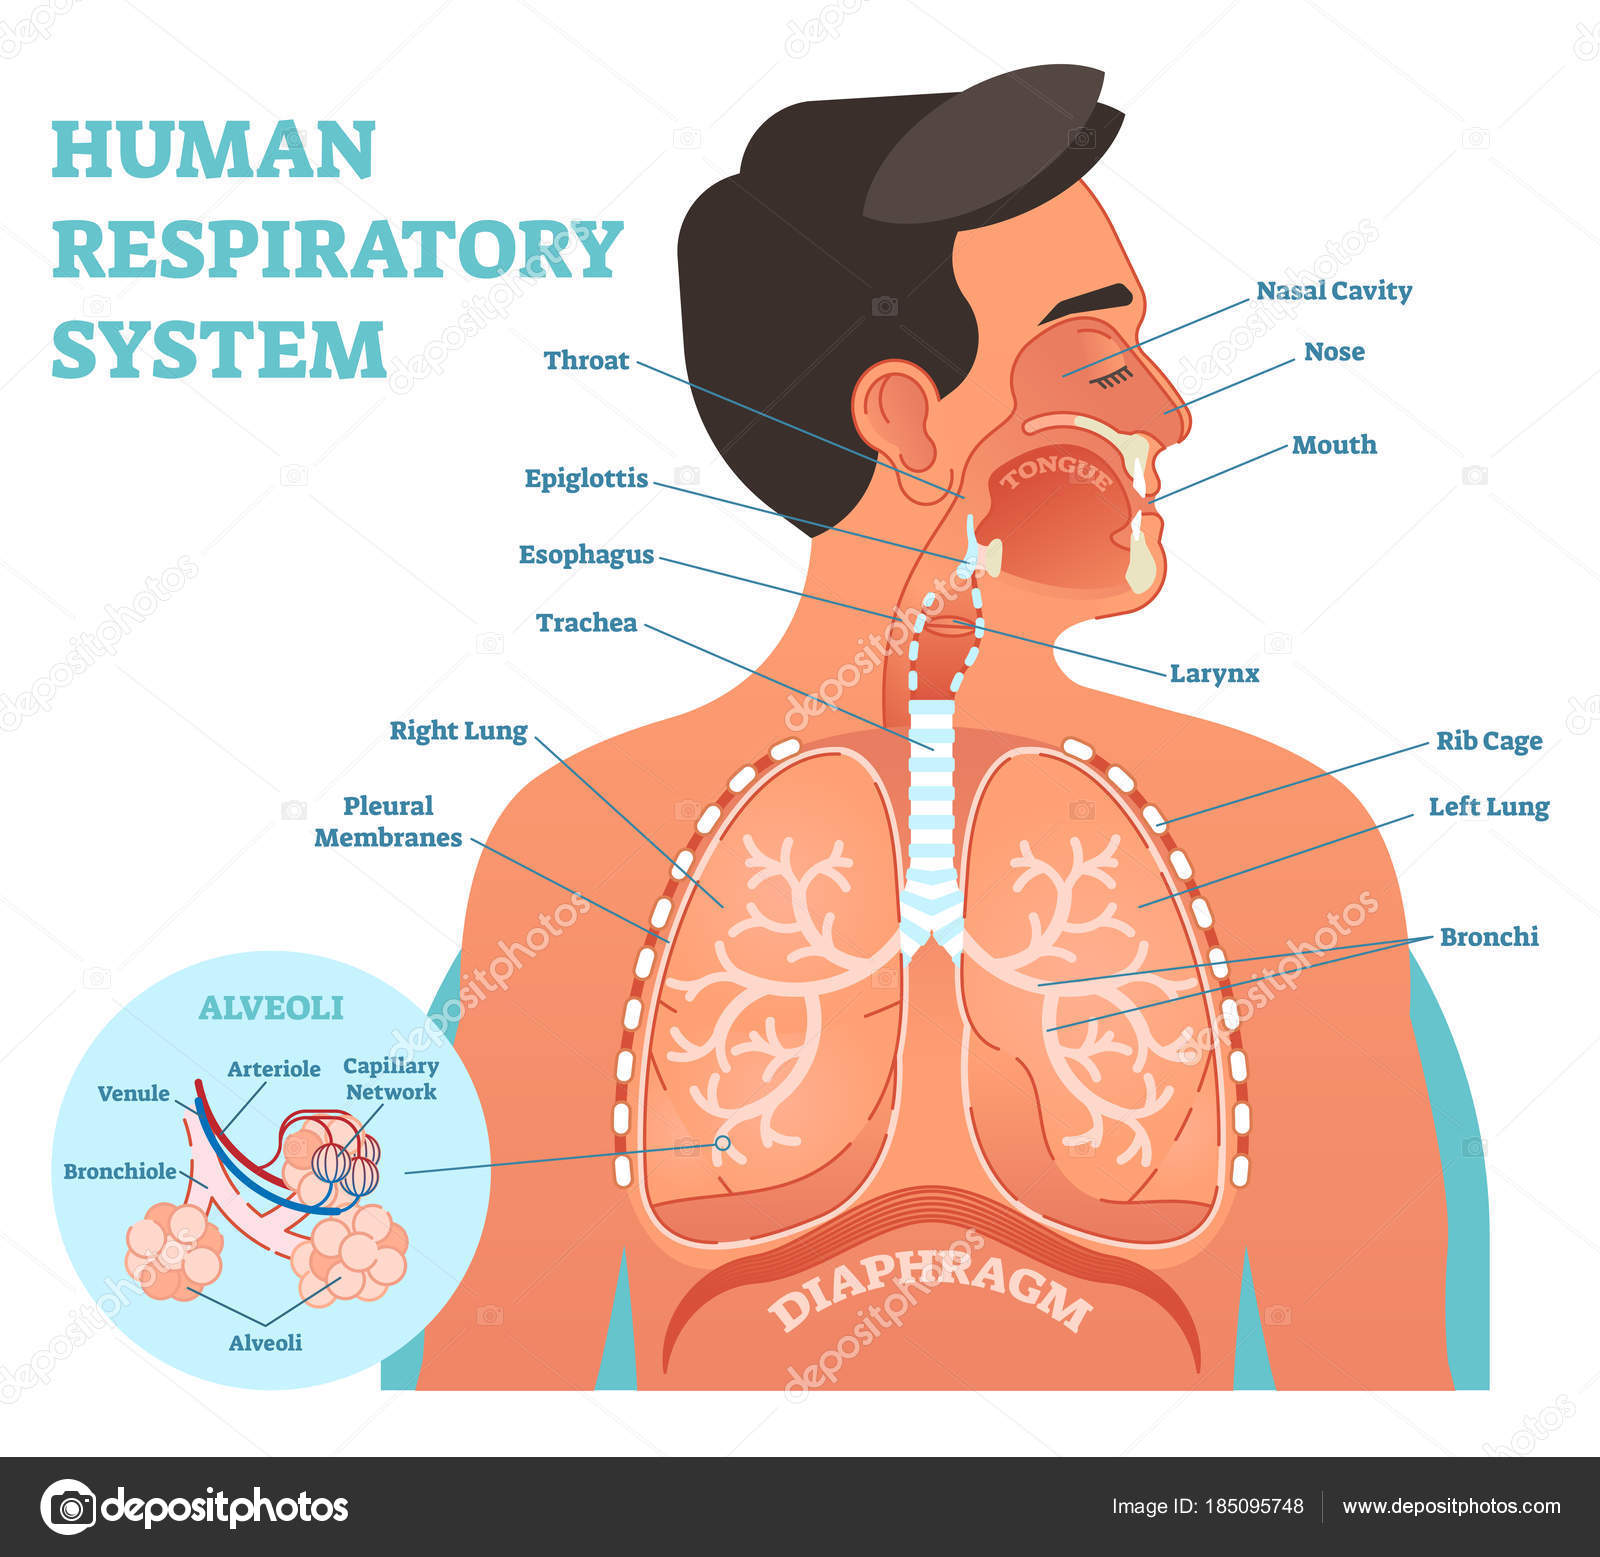 Human respiratory system anatomical vector illustration medical human respiratory system anatomical vector illustration medical education cross section diagram with nasal cavity throat esophagus trachea lungs and ccuart Images